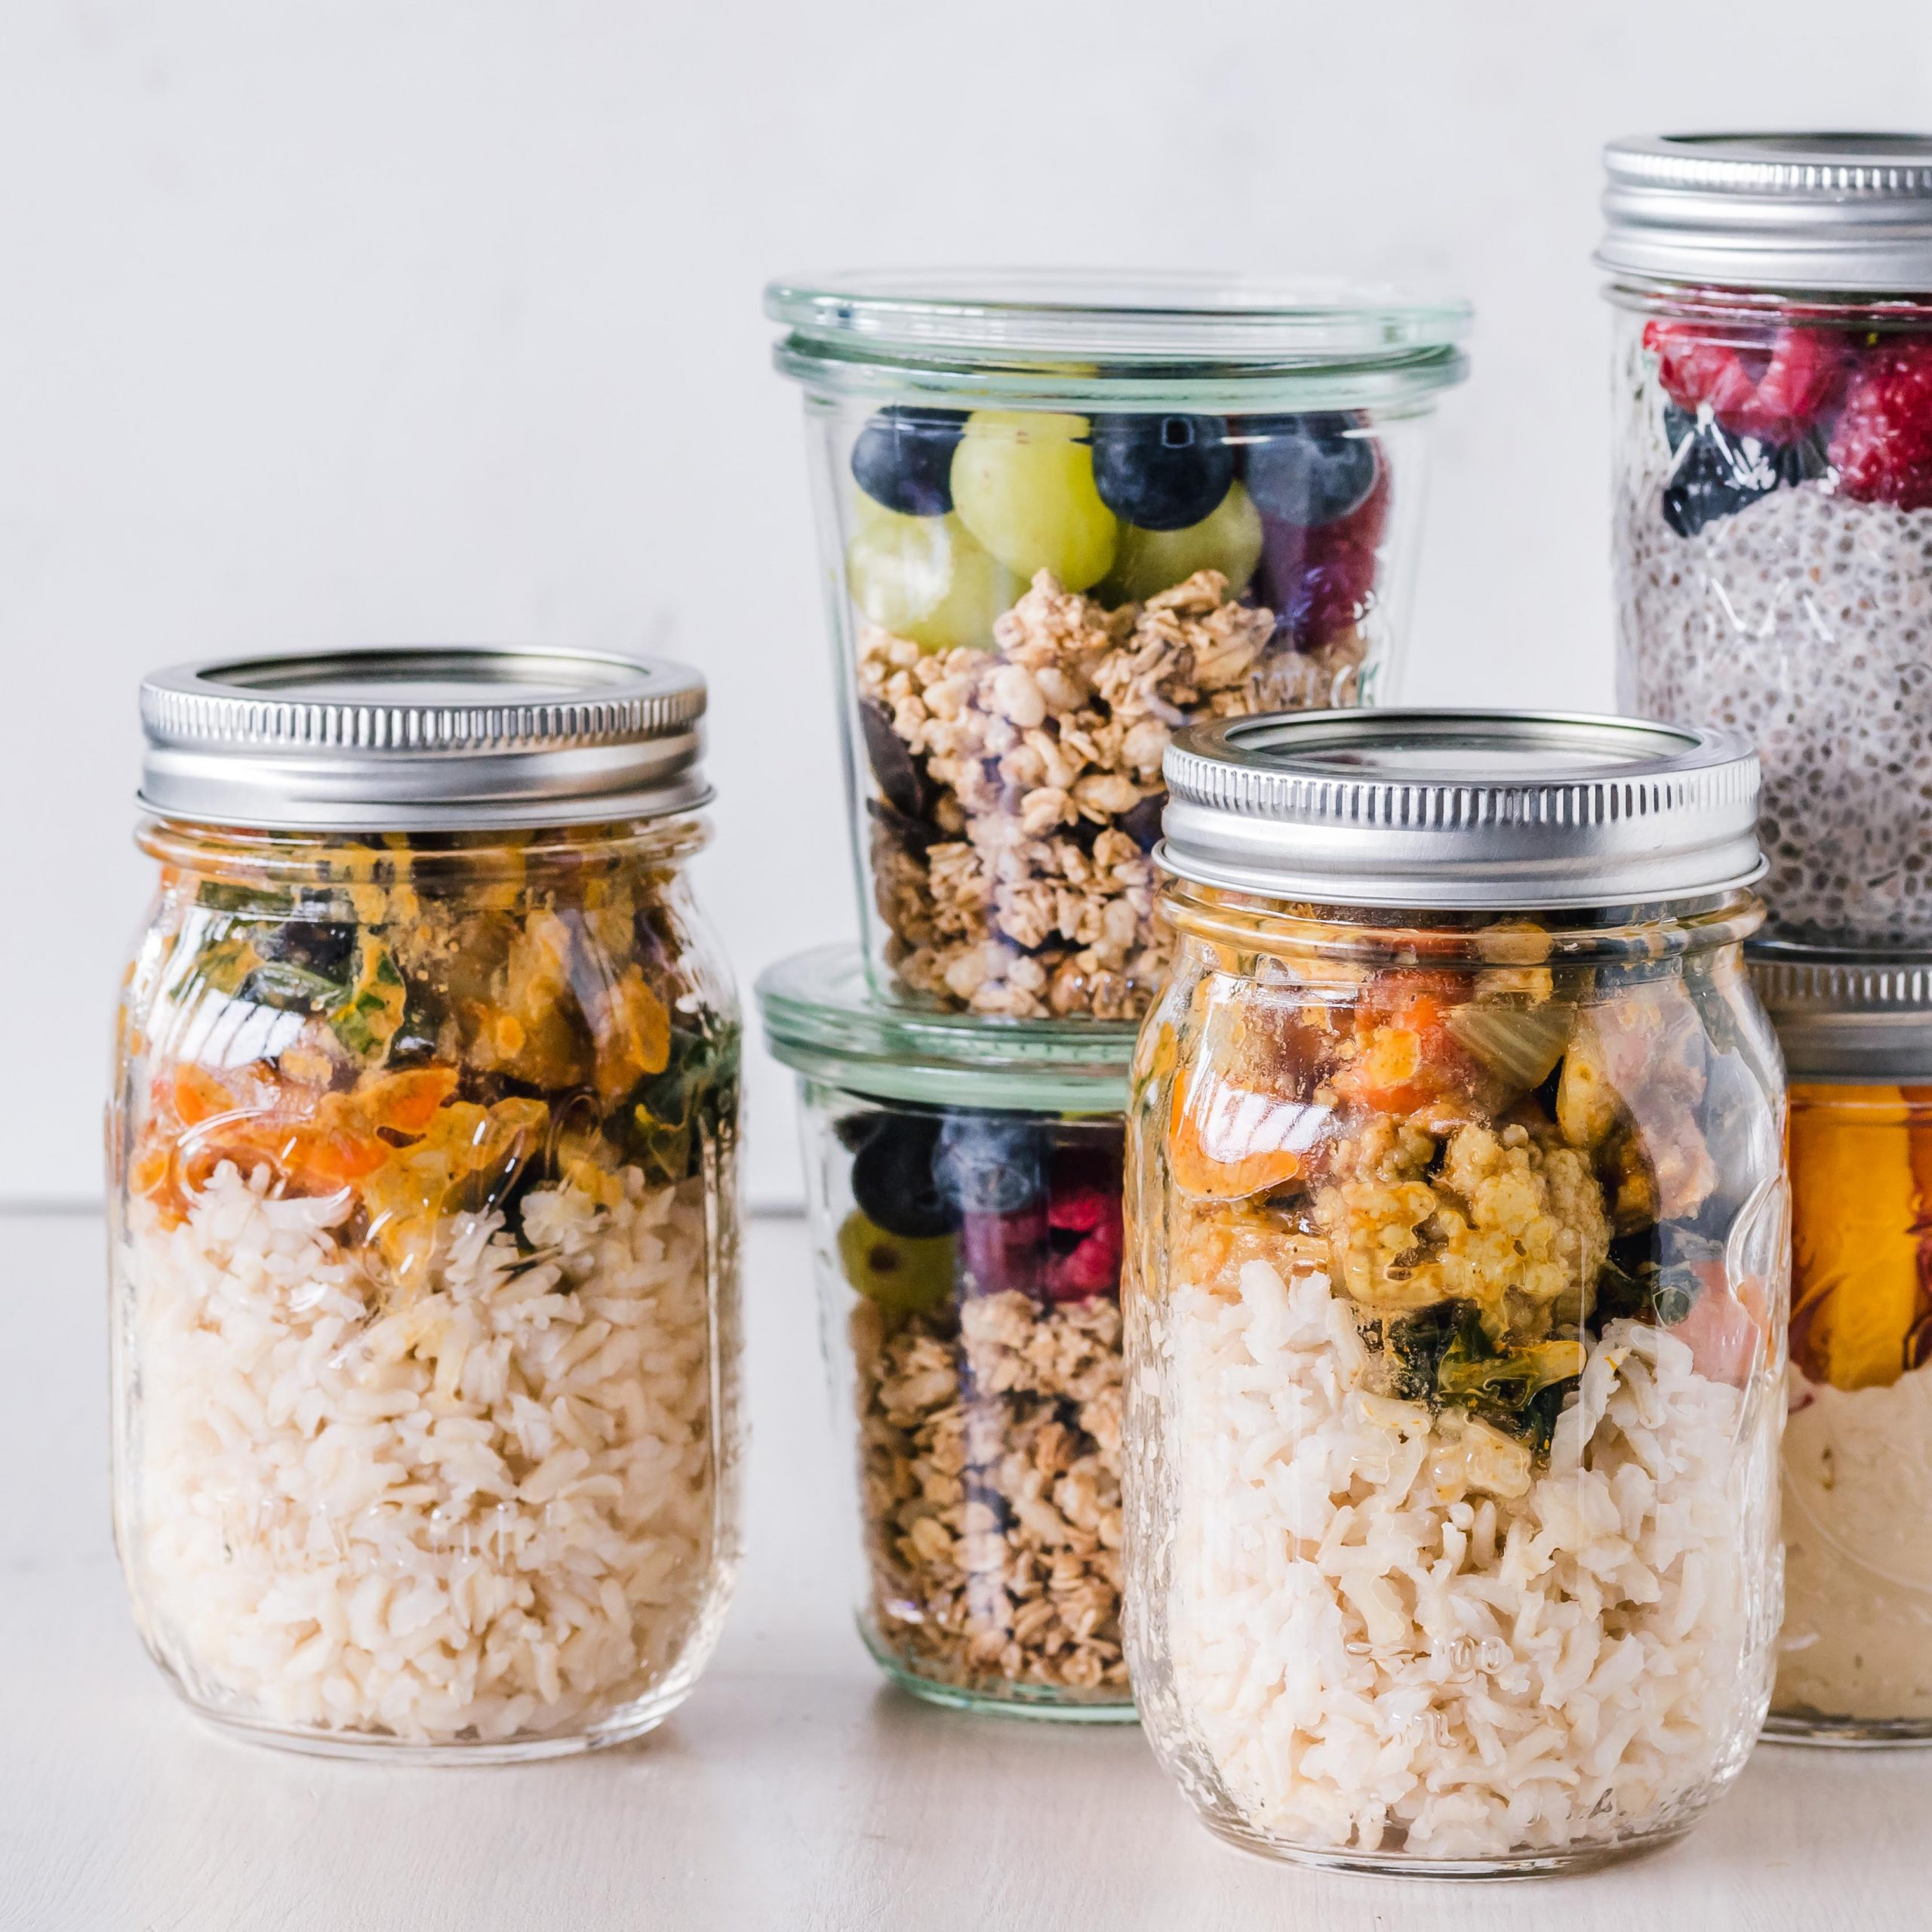 Tips for Reducing Meal Prep Waste